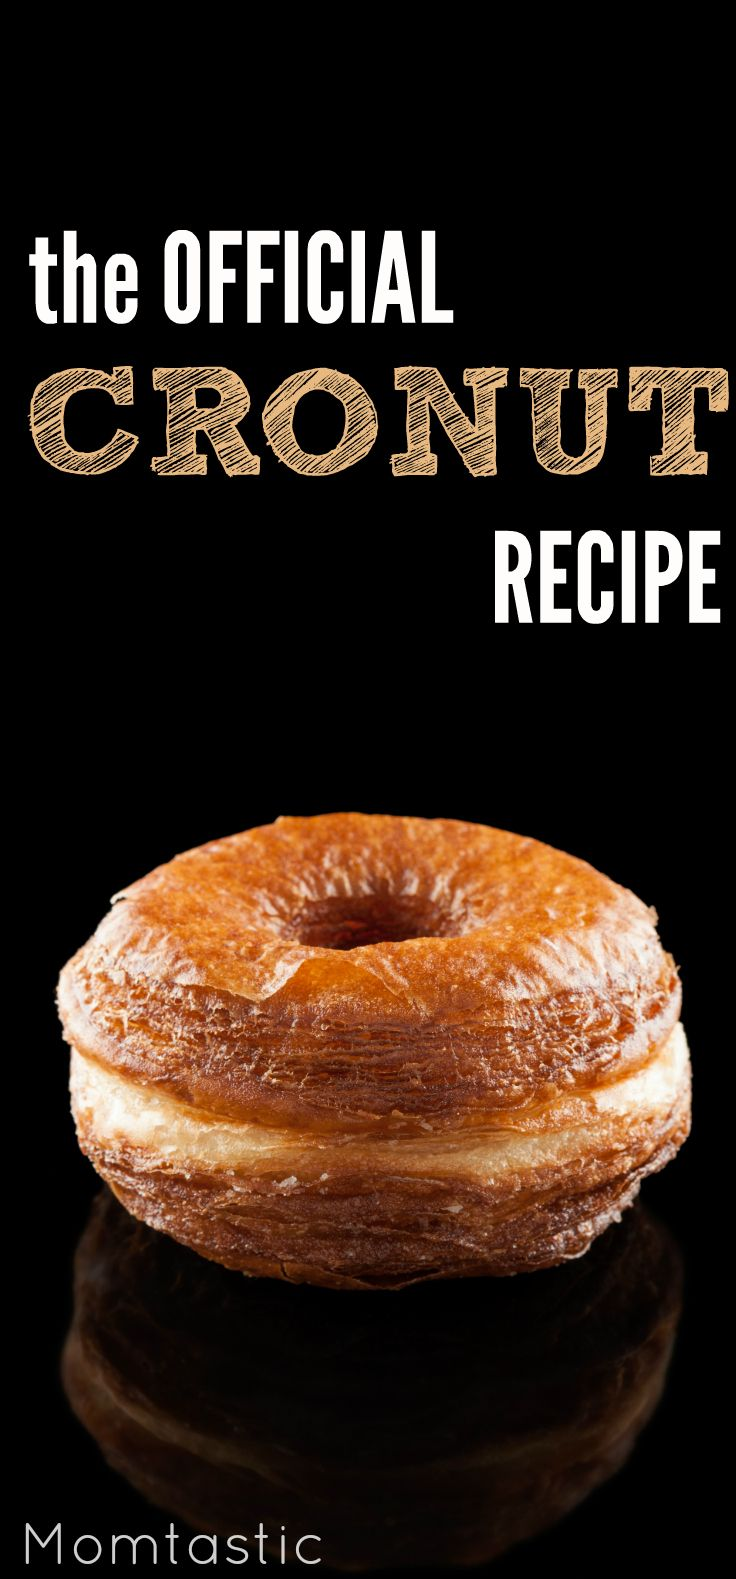 The OFFICIAL Cronuts Recipe is Finally Here! | Shhh- the official #cronut recipe from the maker himself!